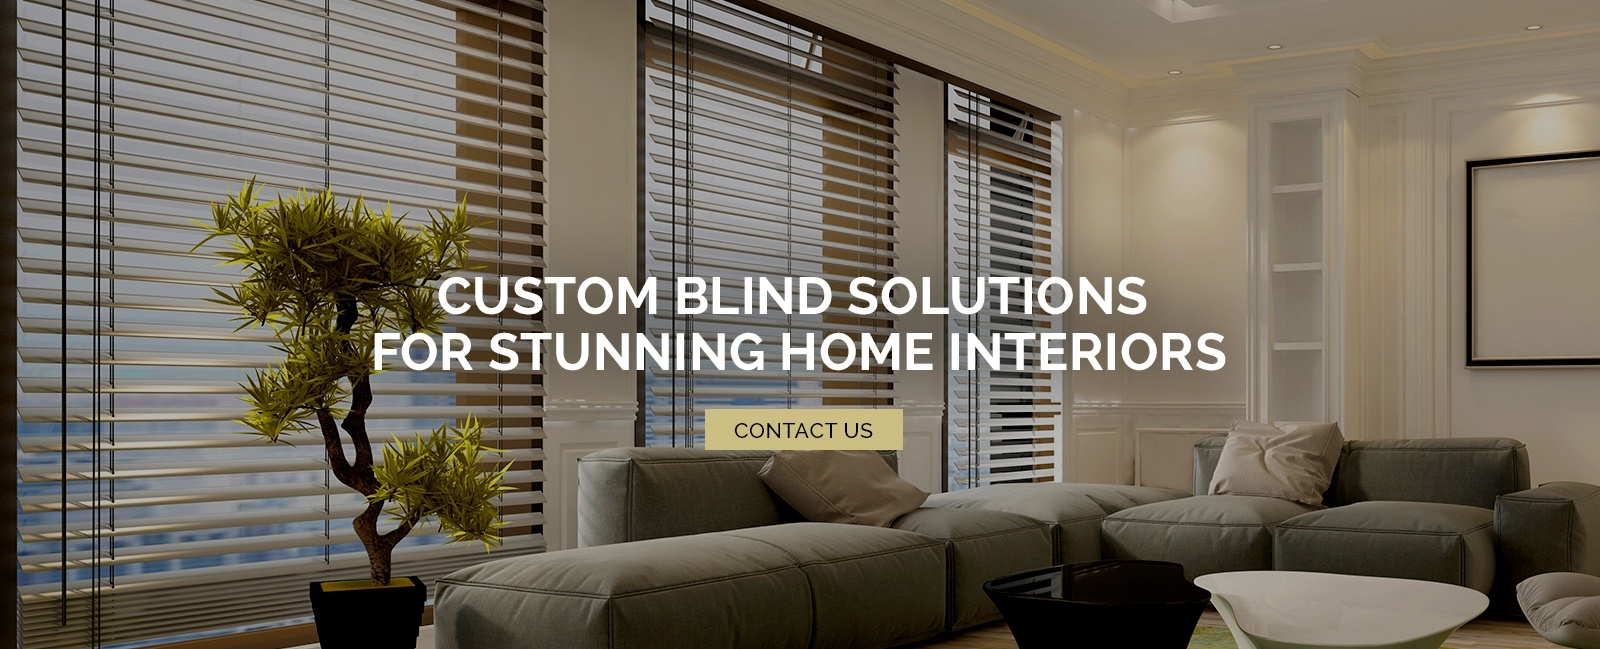 wide window ltd blinds retweets likes replies twitter emily